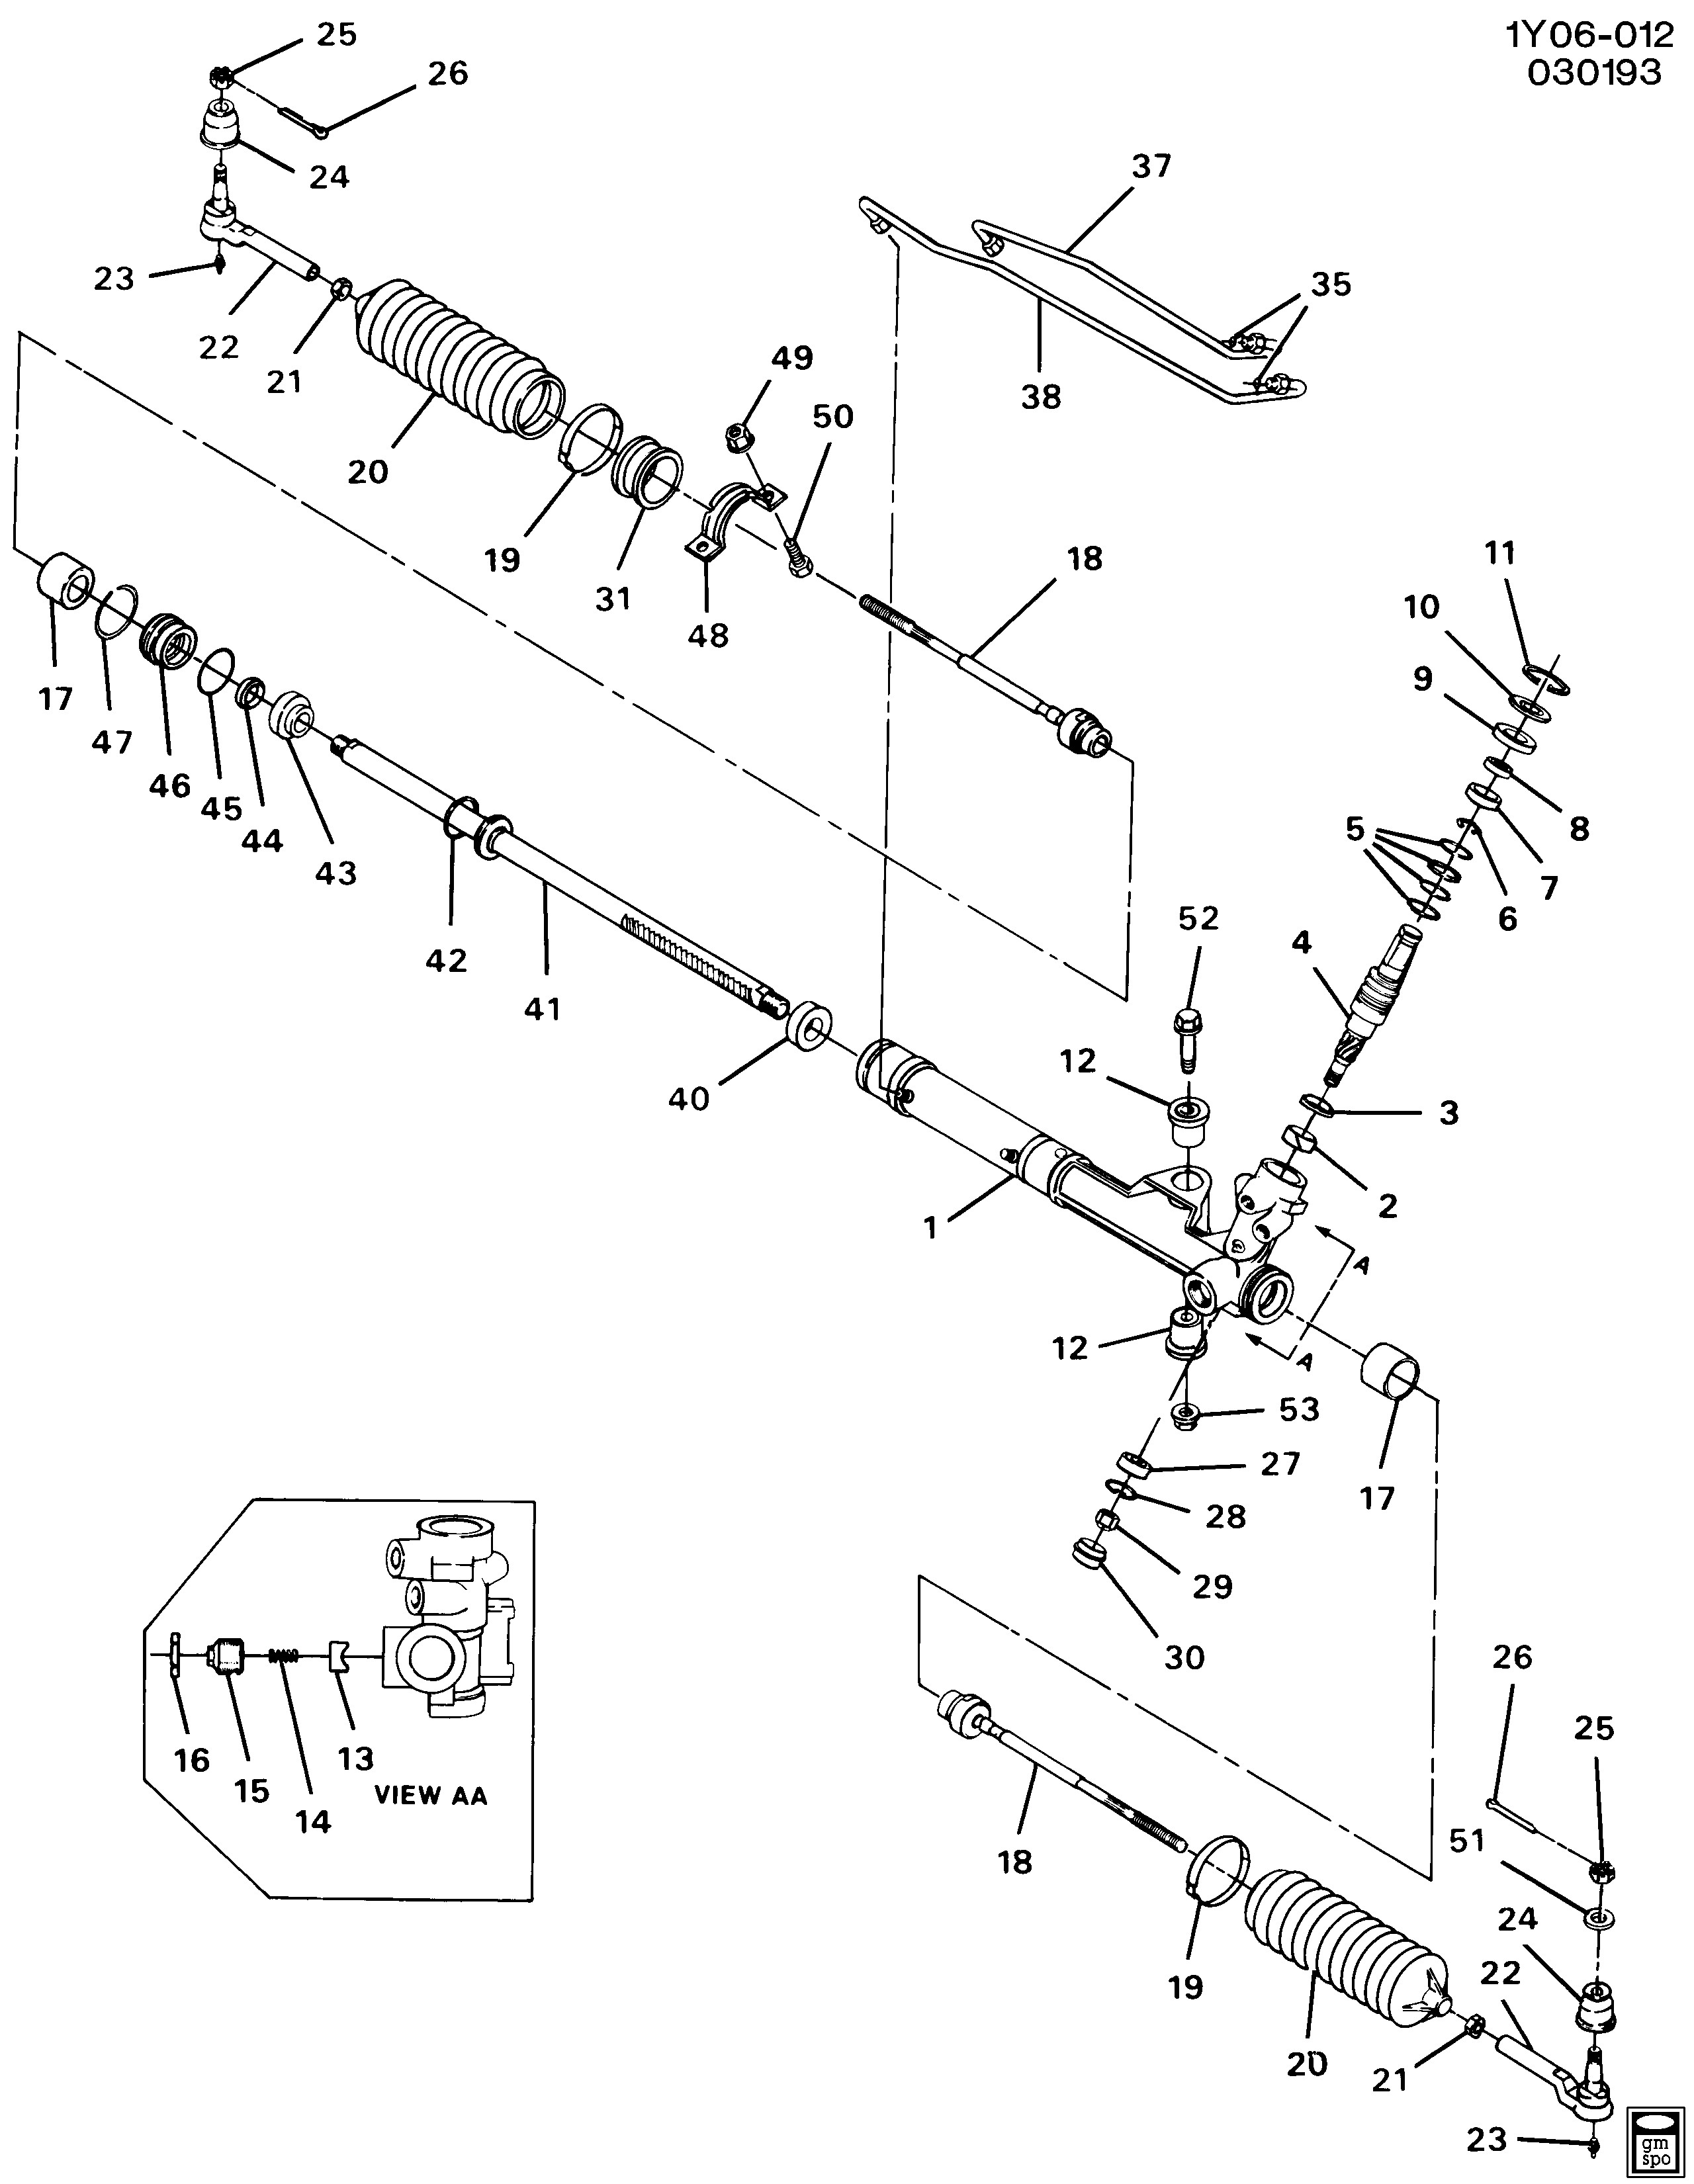 Power Steering Rack and Pinion Diagram Corvette Steering asm Rack & Pinion Power Chevrolet Epc Line